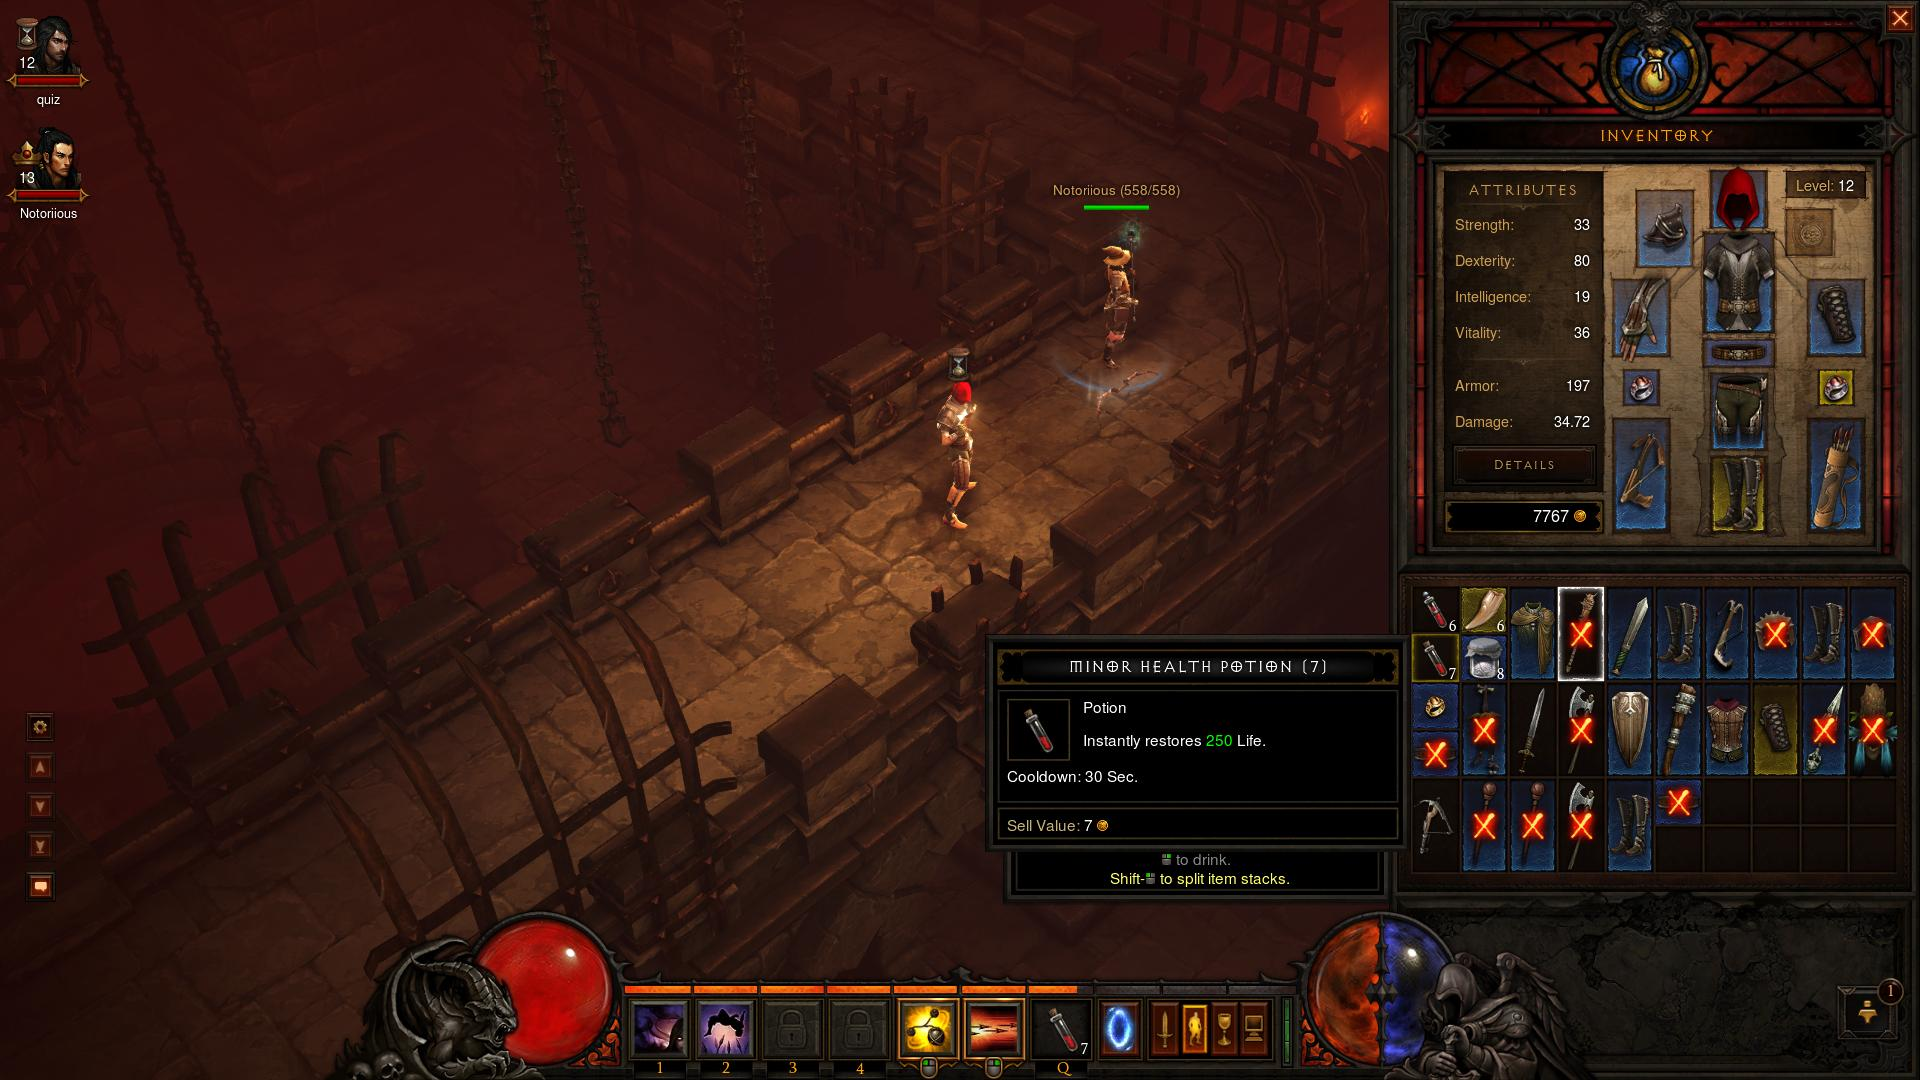 Diablo 3 Inventory d3 screenshot